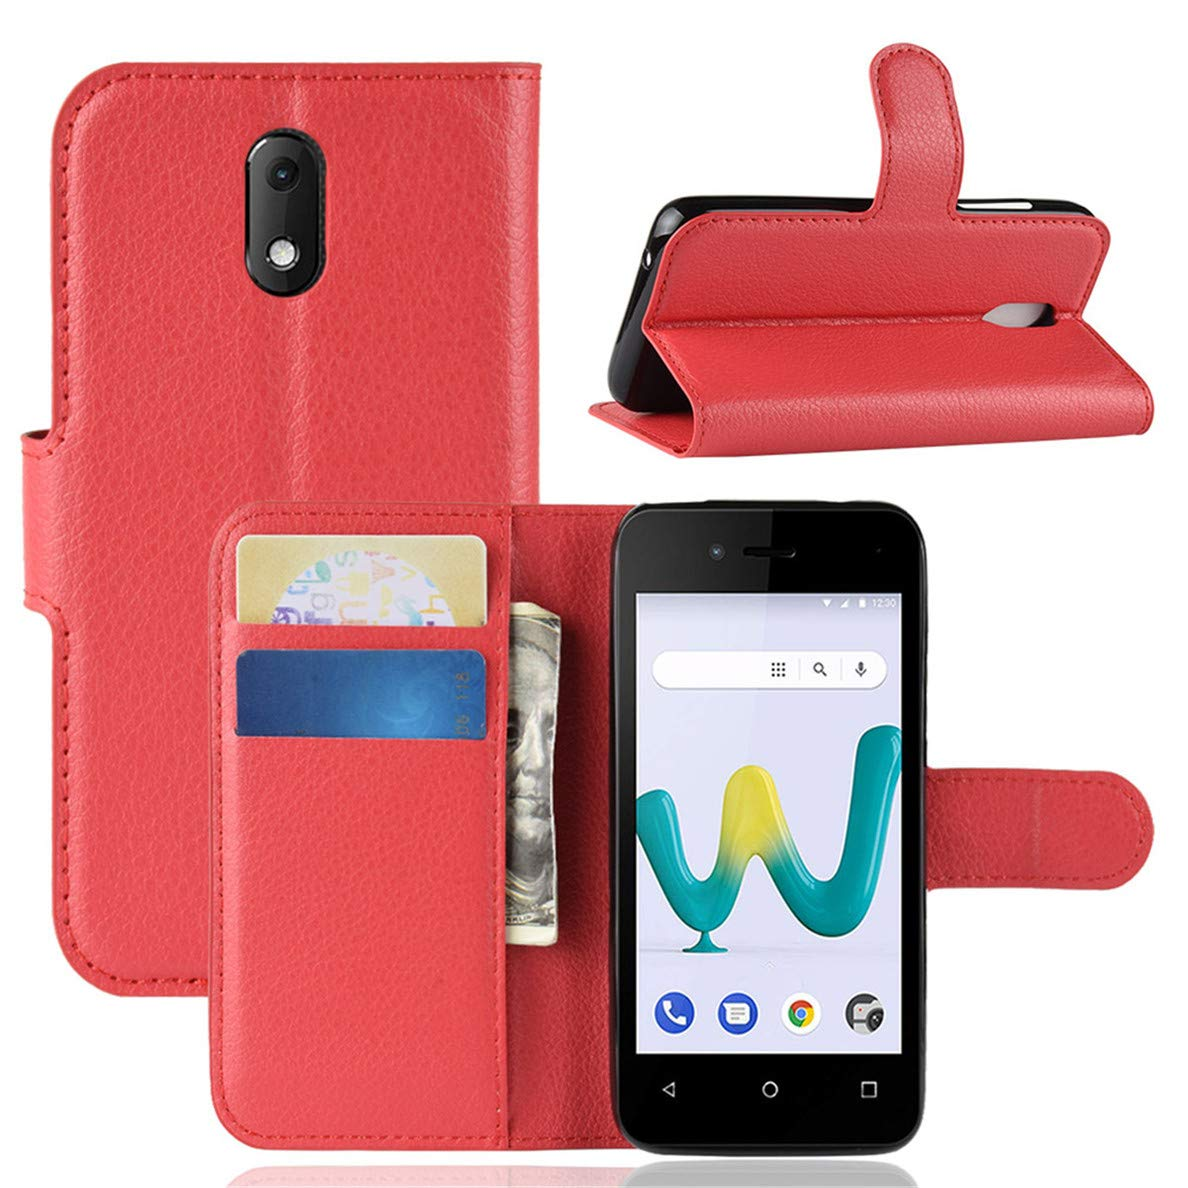 Amazon com: Hfly for Wiko Sunny 3 Mini Case, Classic Case for Wiko